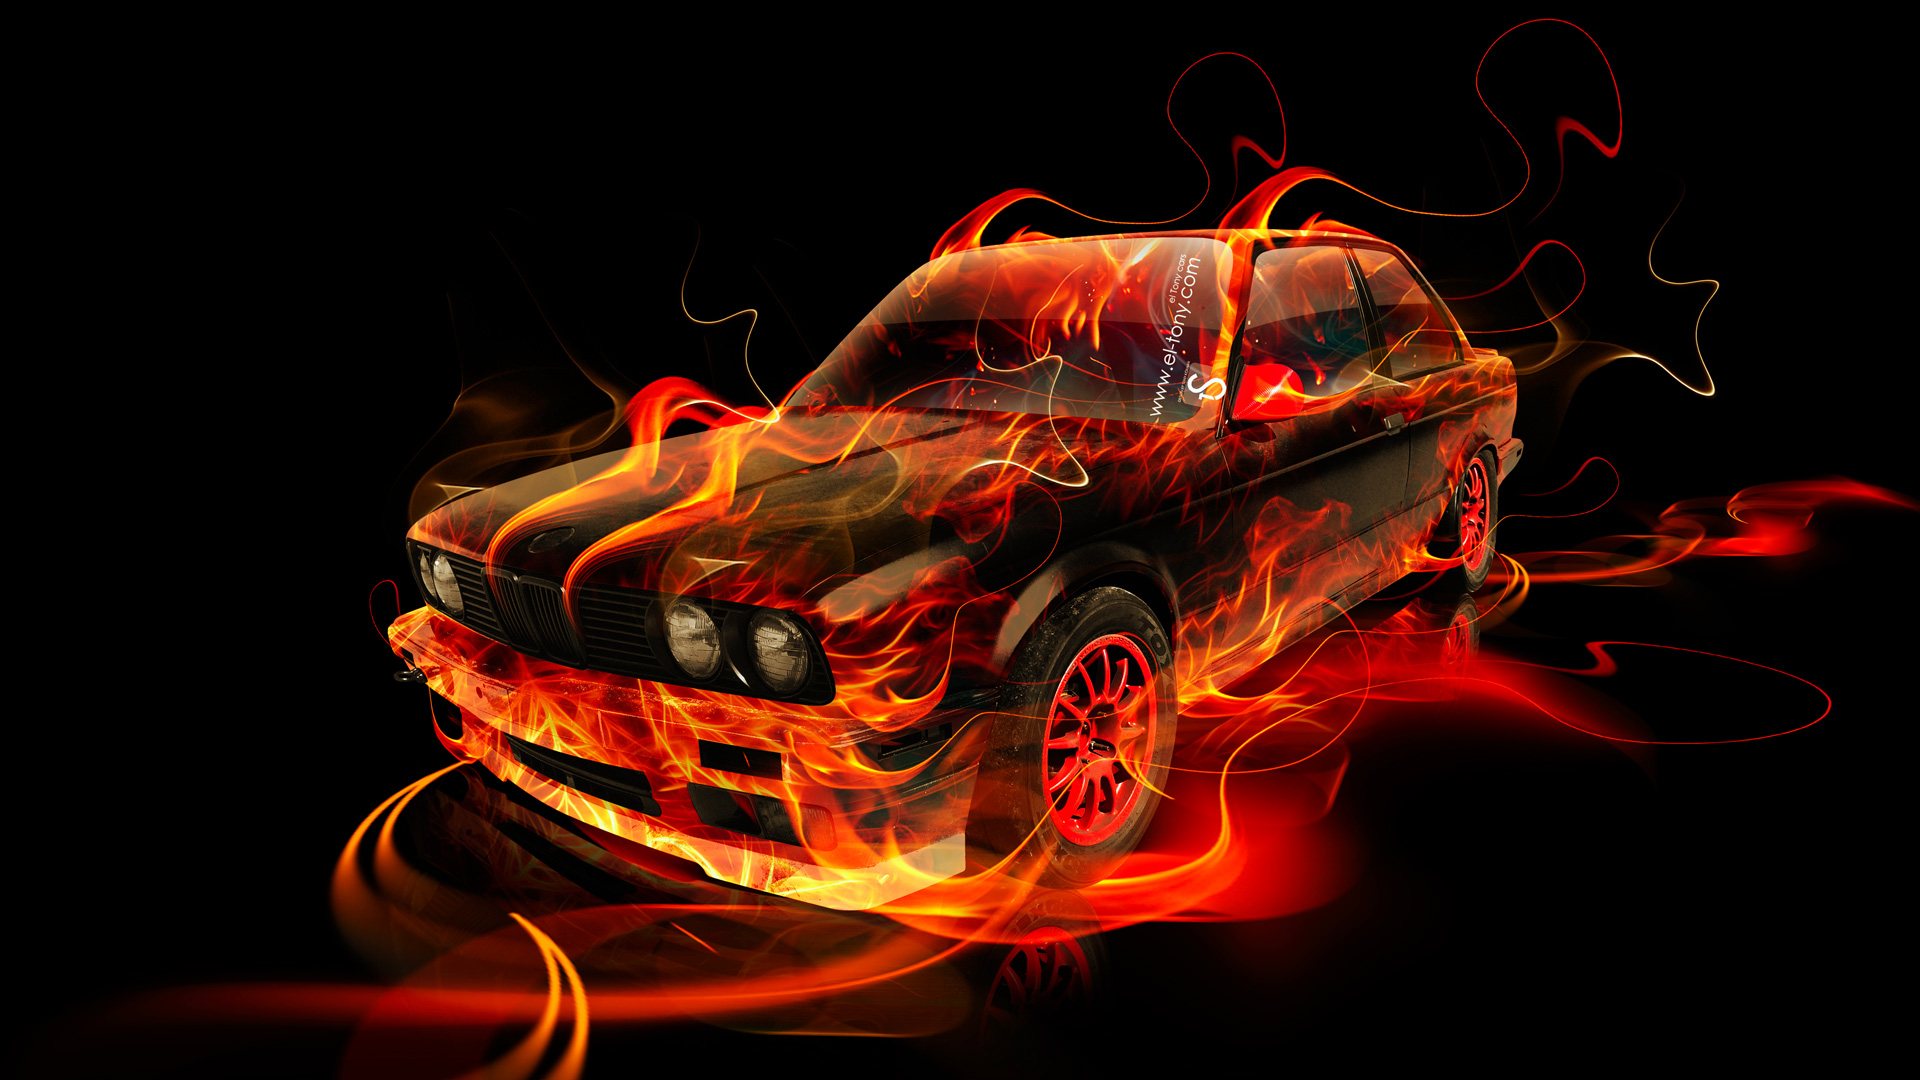 Delightful ... BMW E30 Fire Abstract Car 2014